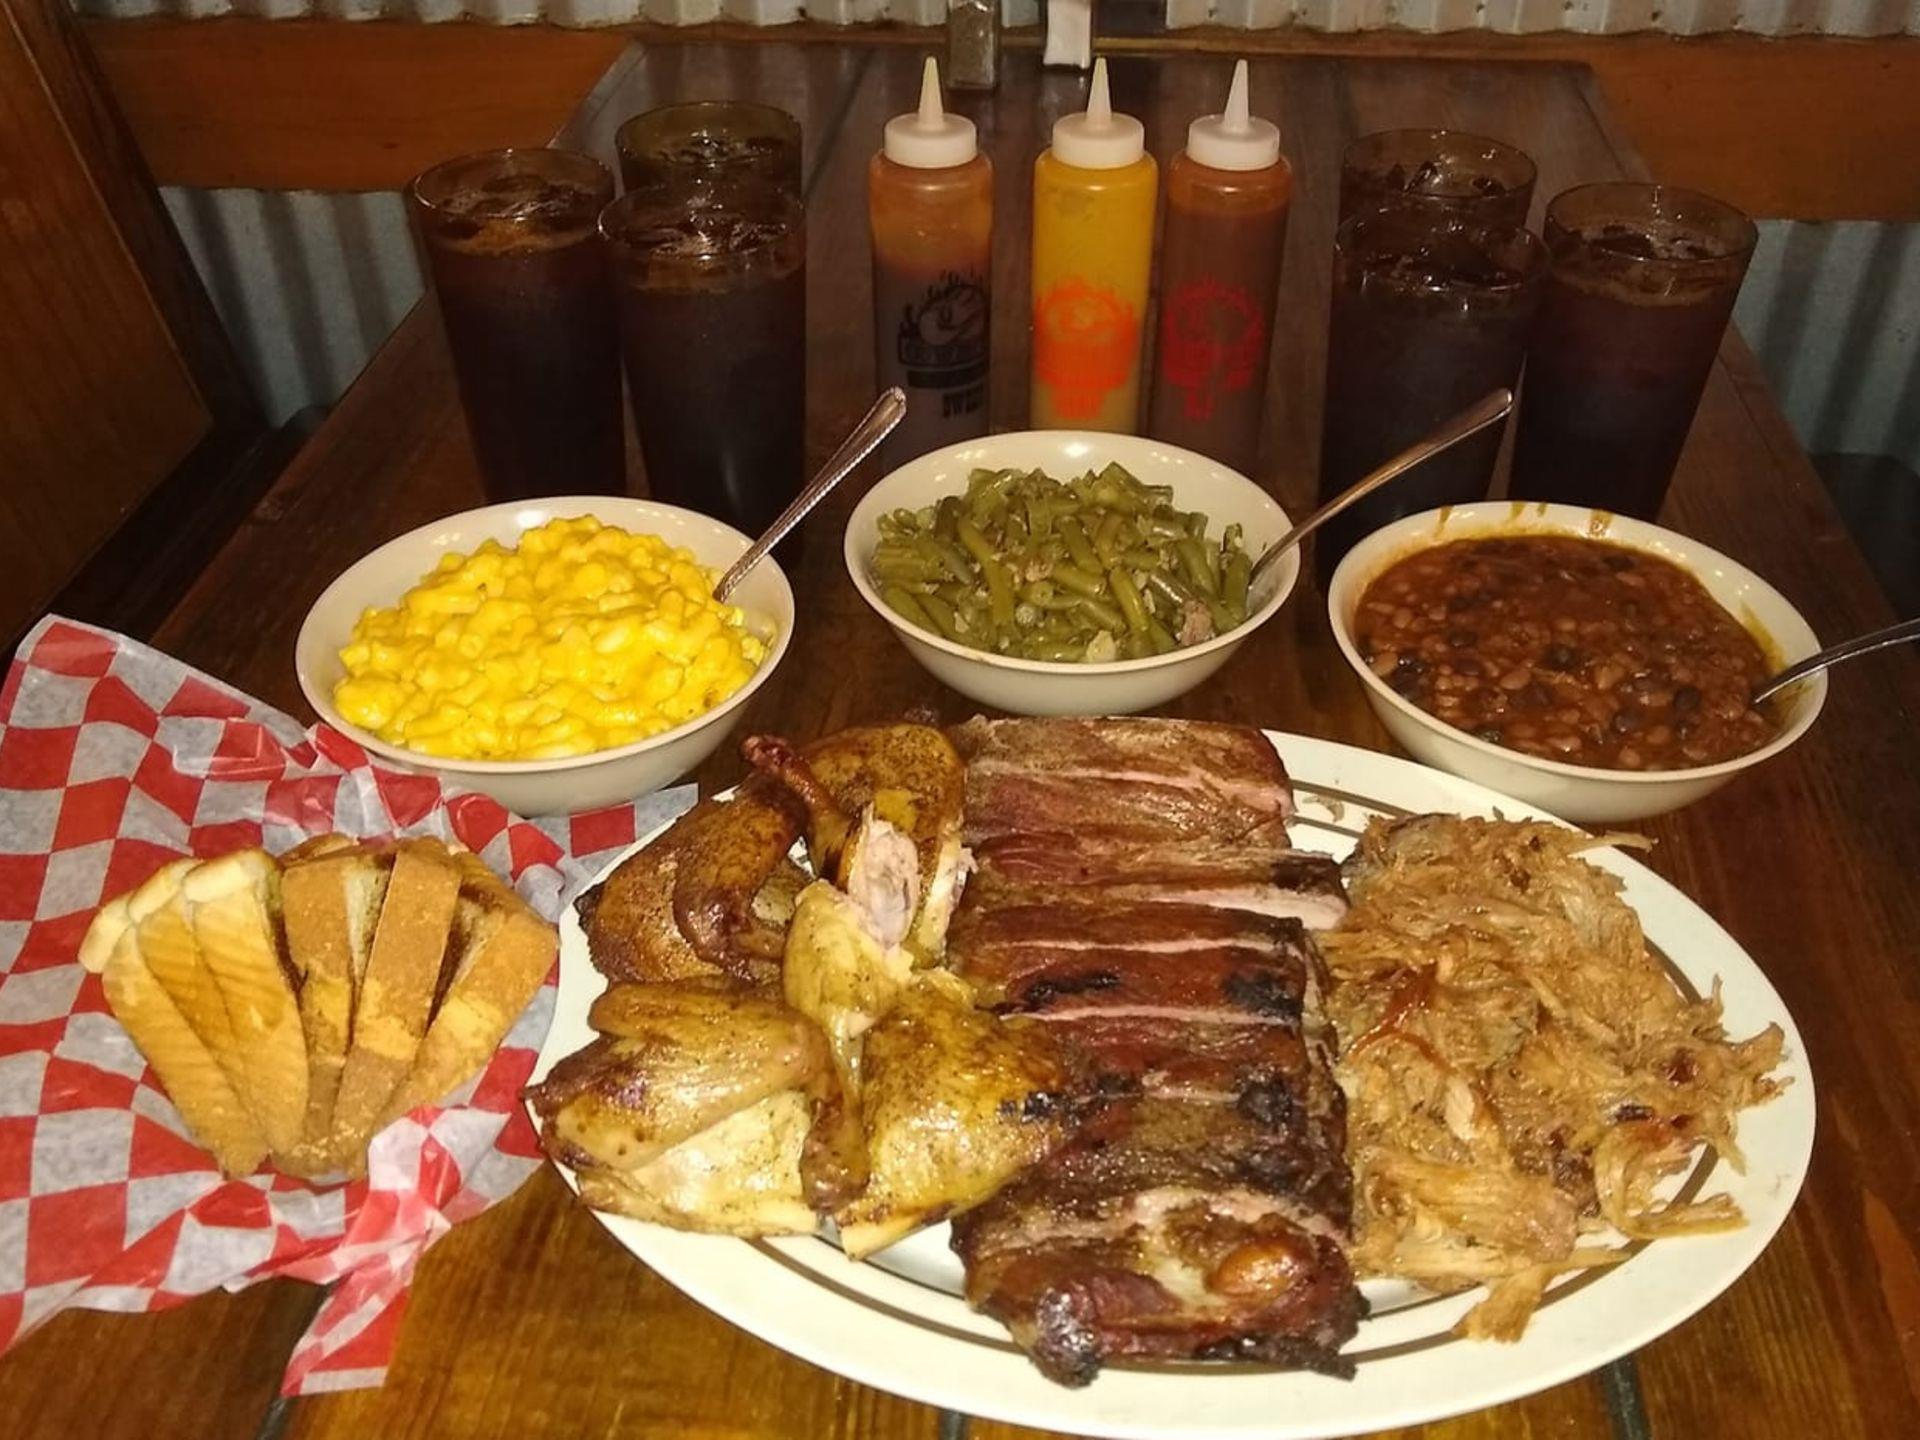 Rack of BBQ ribs on a plate with BBQ chicken and pulled pork, toasted bread, mac and cheese, green beans, baked beans and an assortment of sauces in bottles